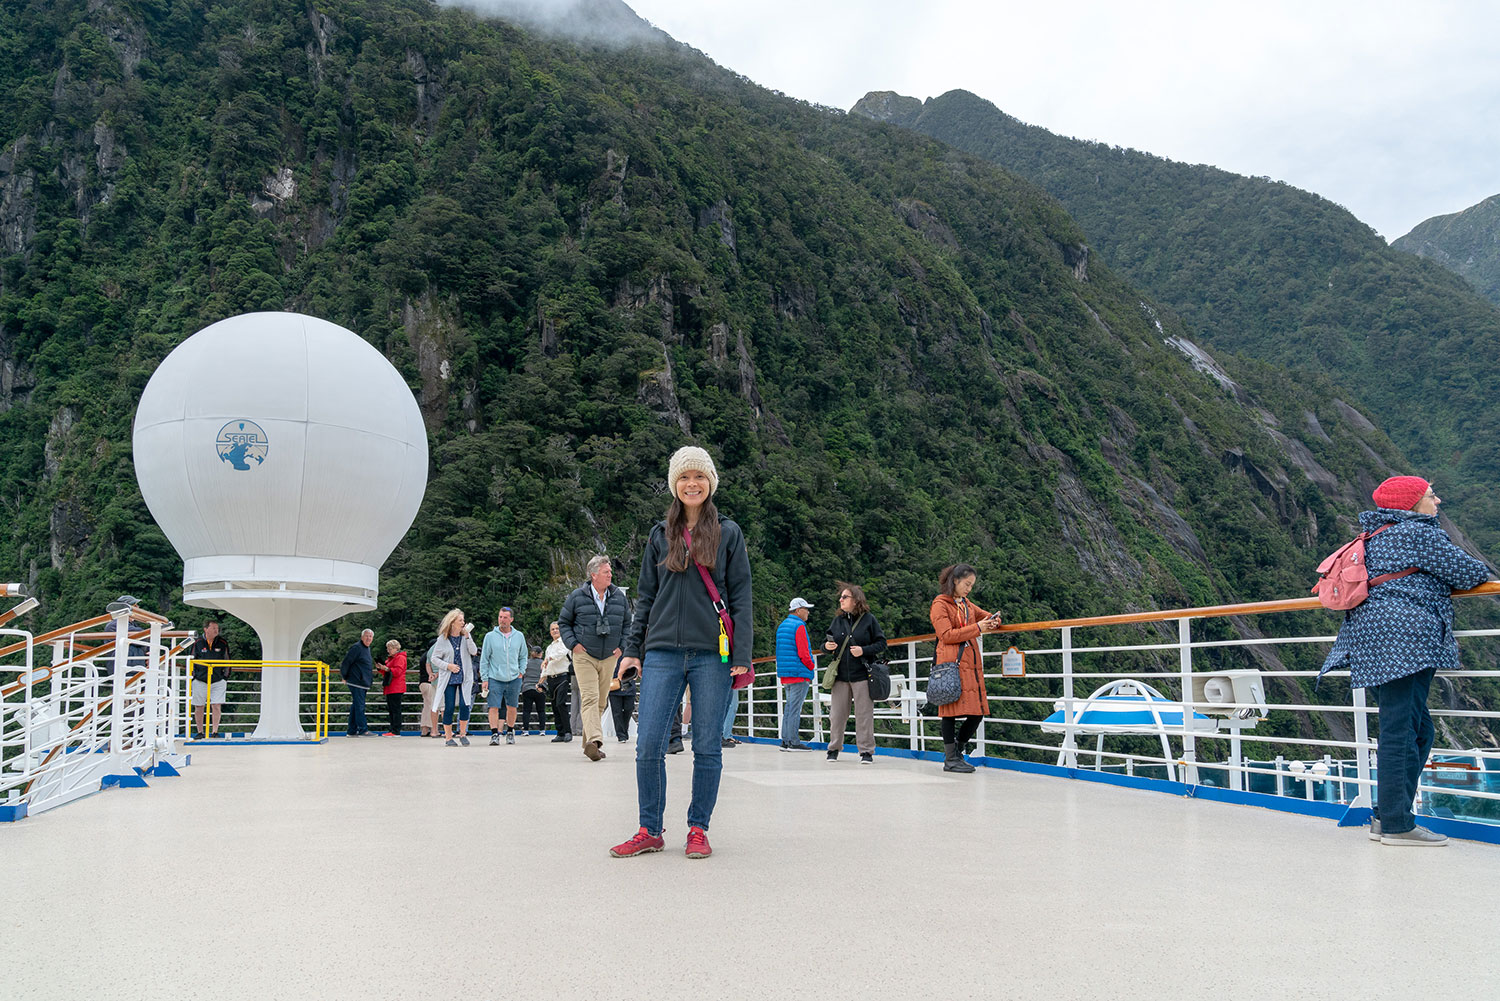 Thaneeya McArdle at Milford Sound, Fiordland National Park in New Zealand